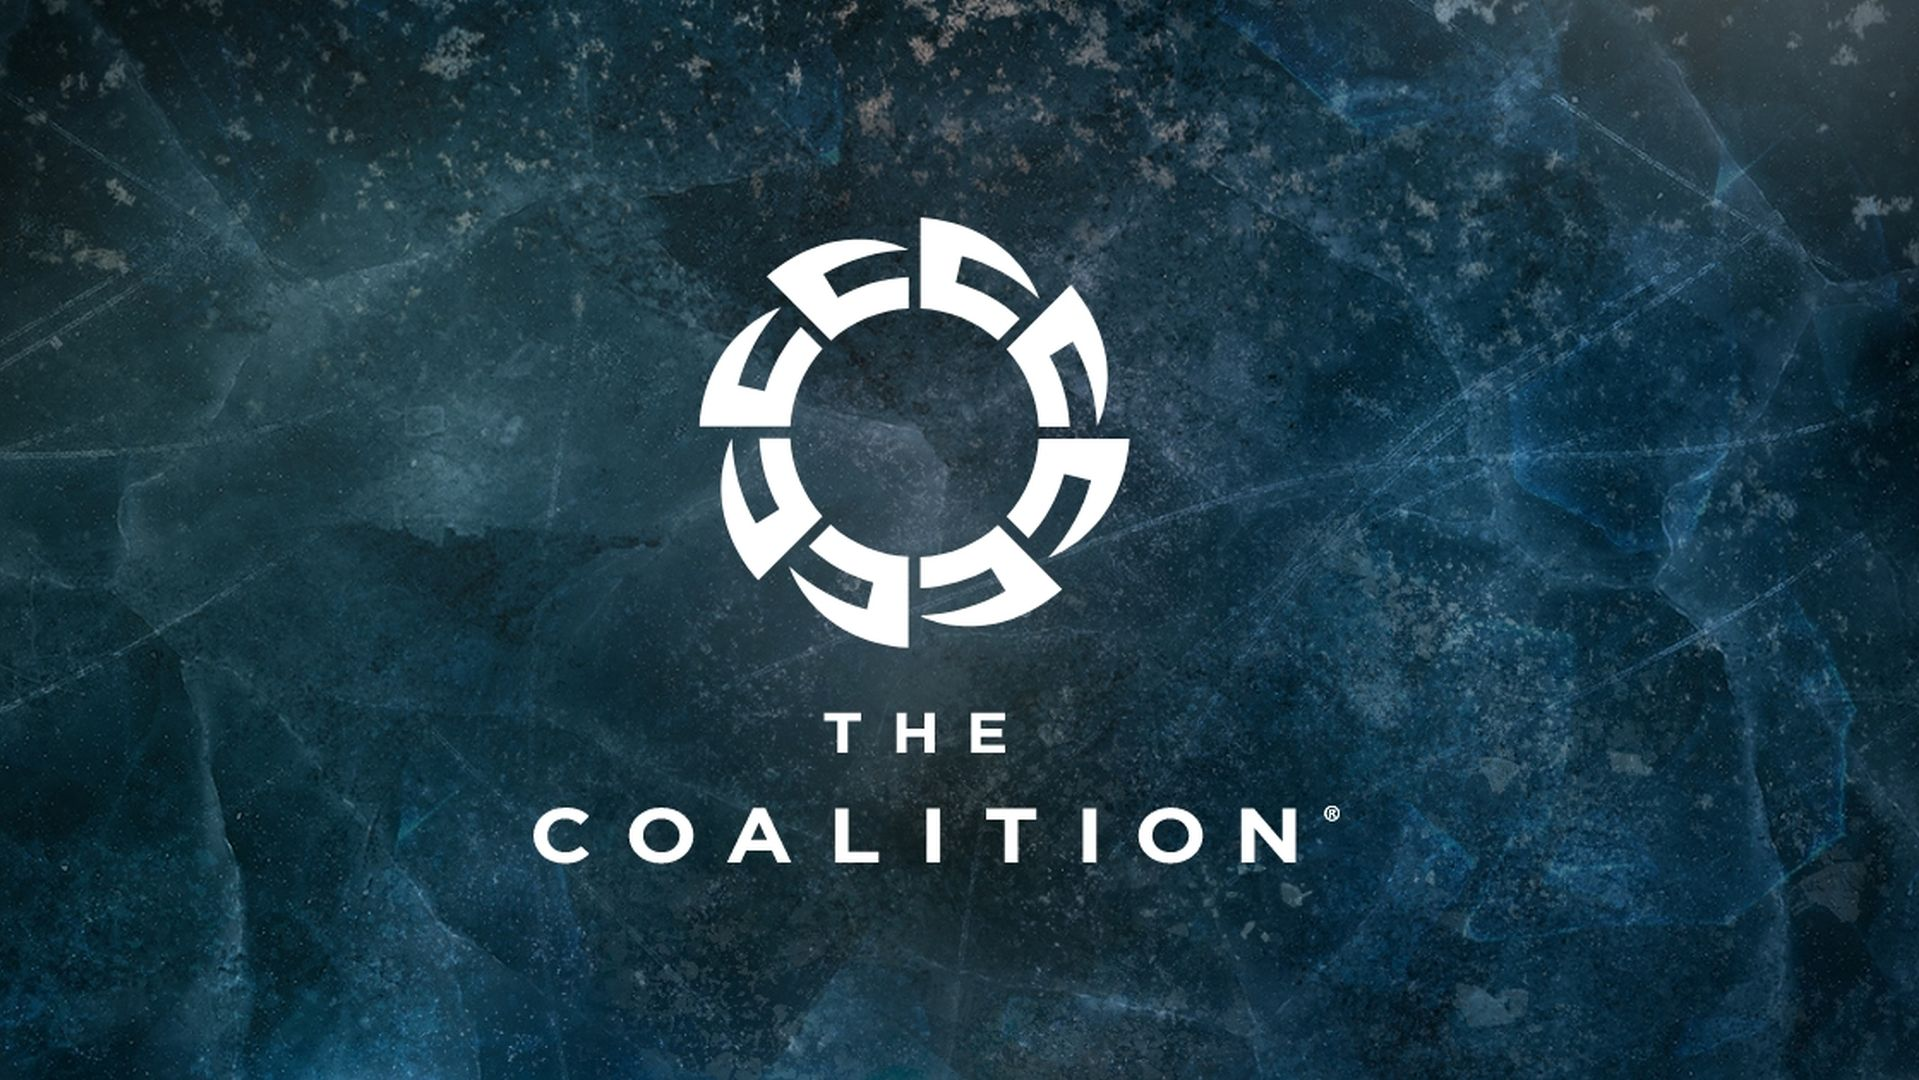 The Coalition